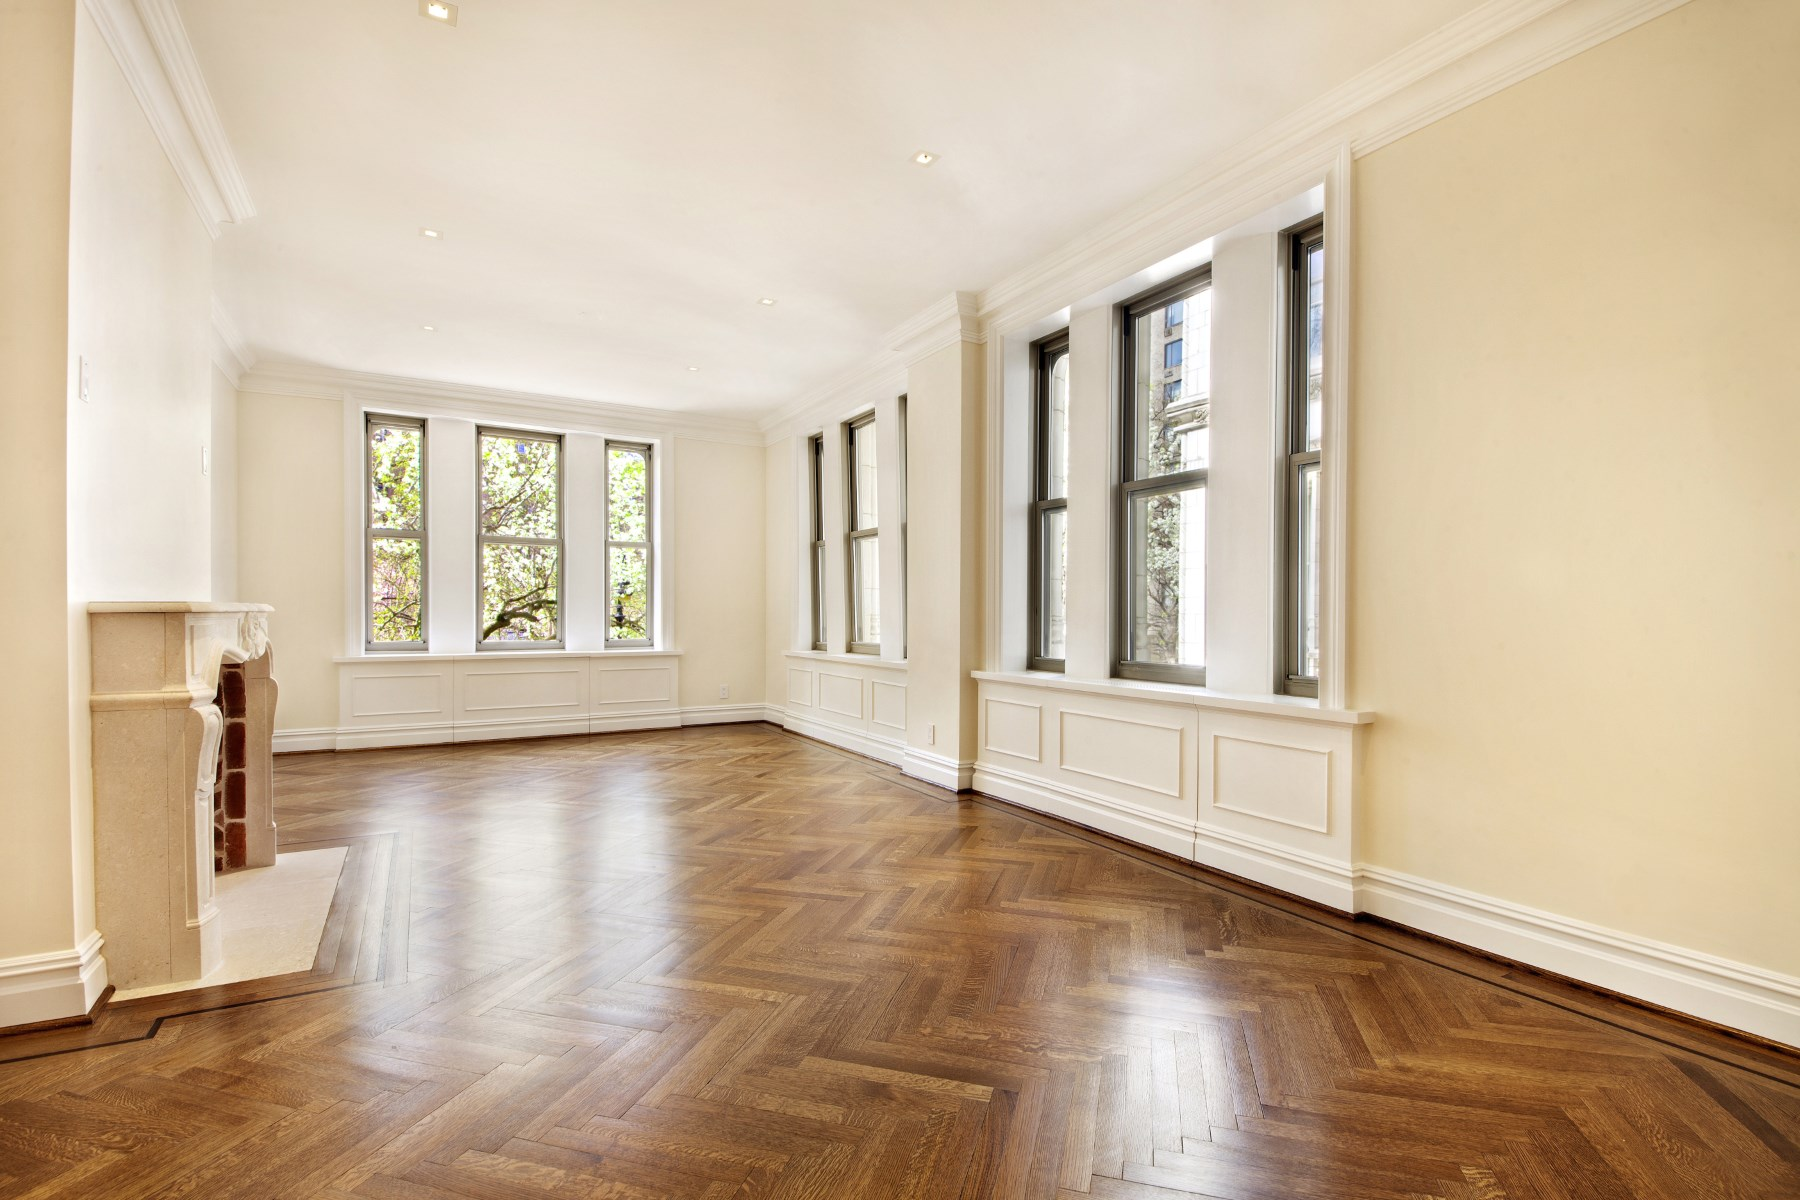 Condominium for Sale at 36 Gramercy Park East Condominium 36 Gramercy Park East Apt 2S Gramercy Park, New York, New York, 10003 United States